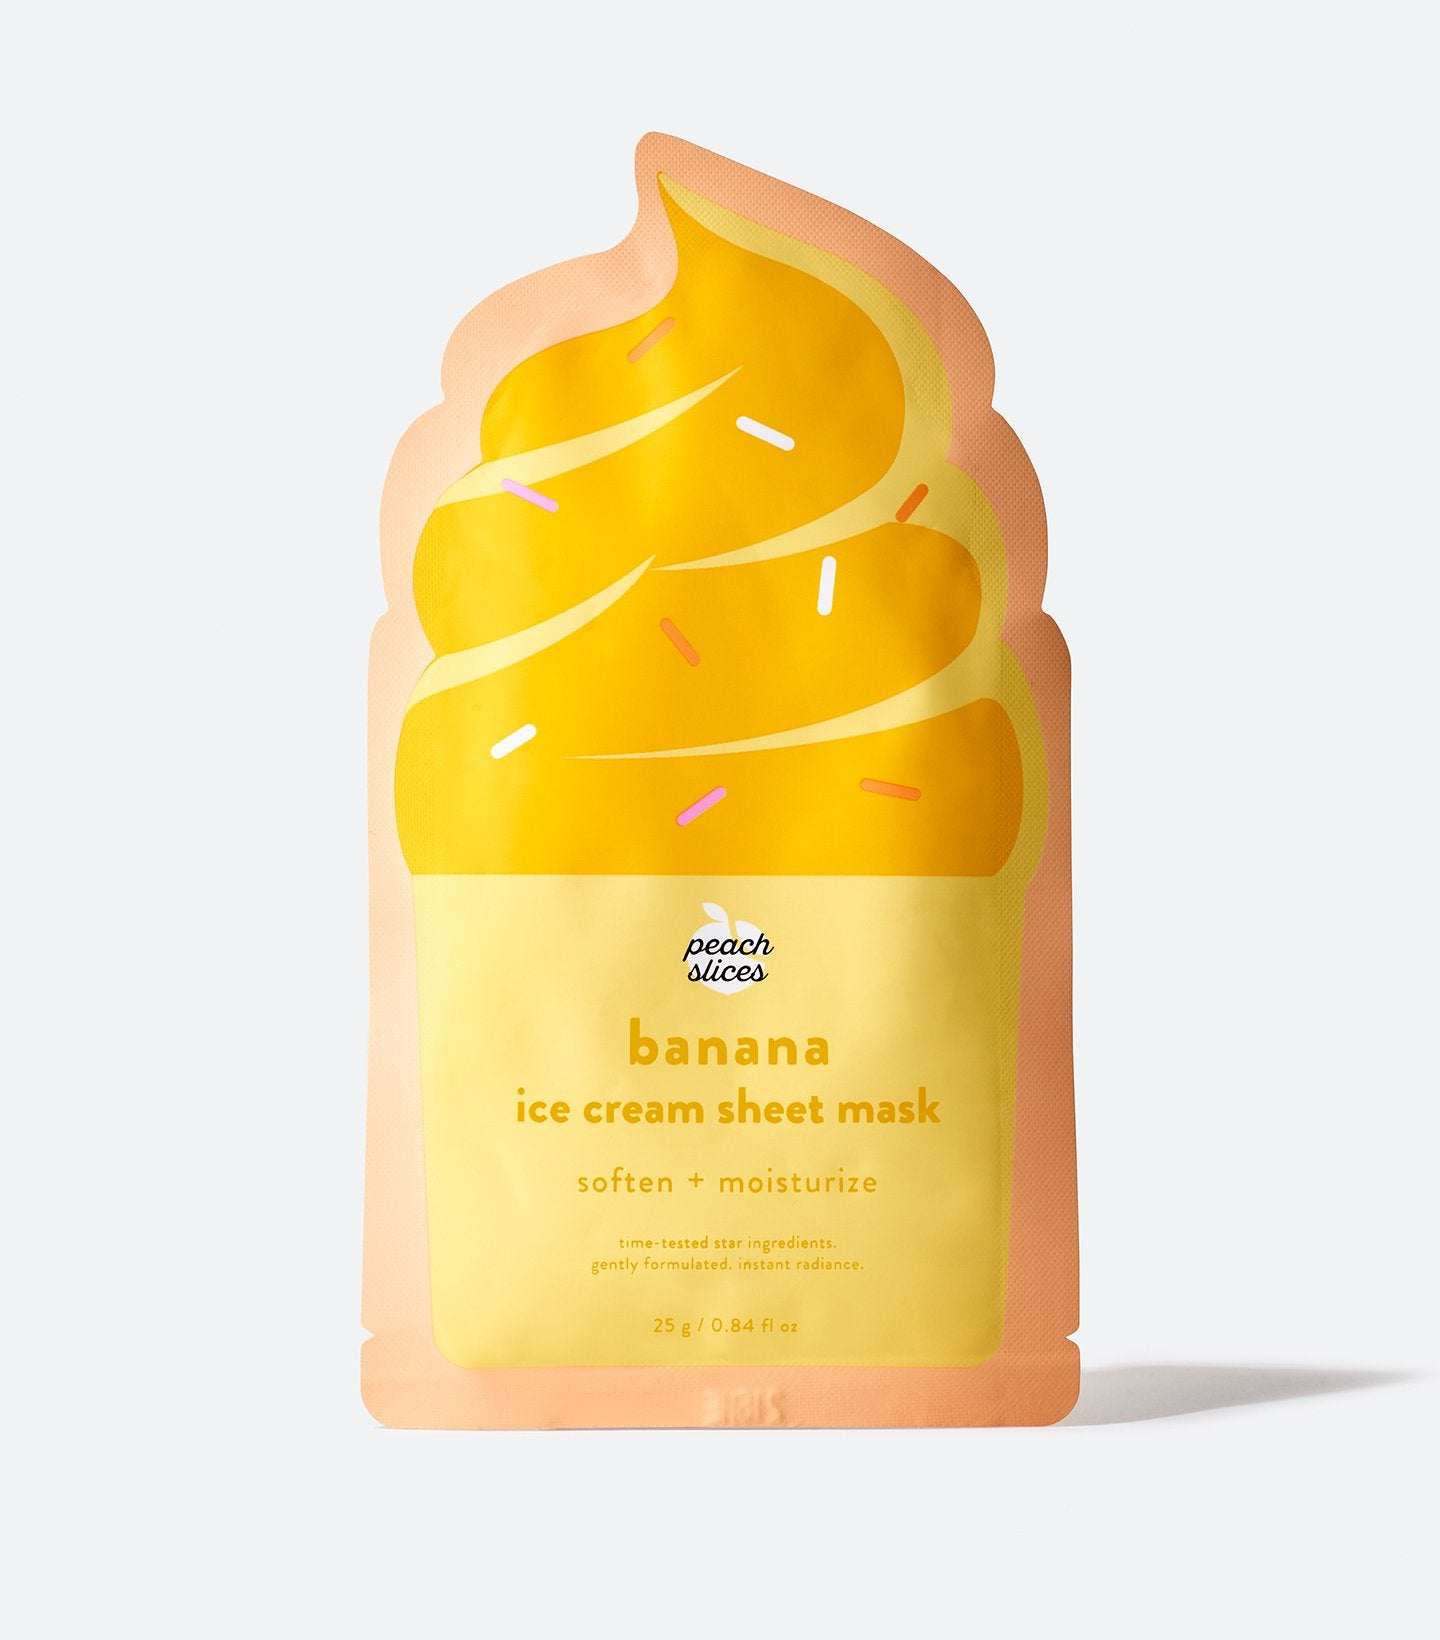 Banana Ice Cream Sheet Mask